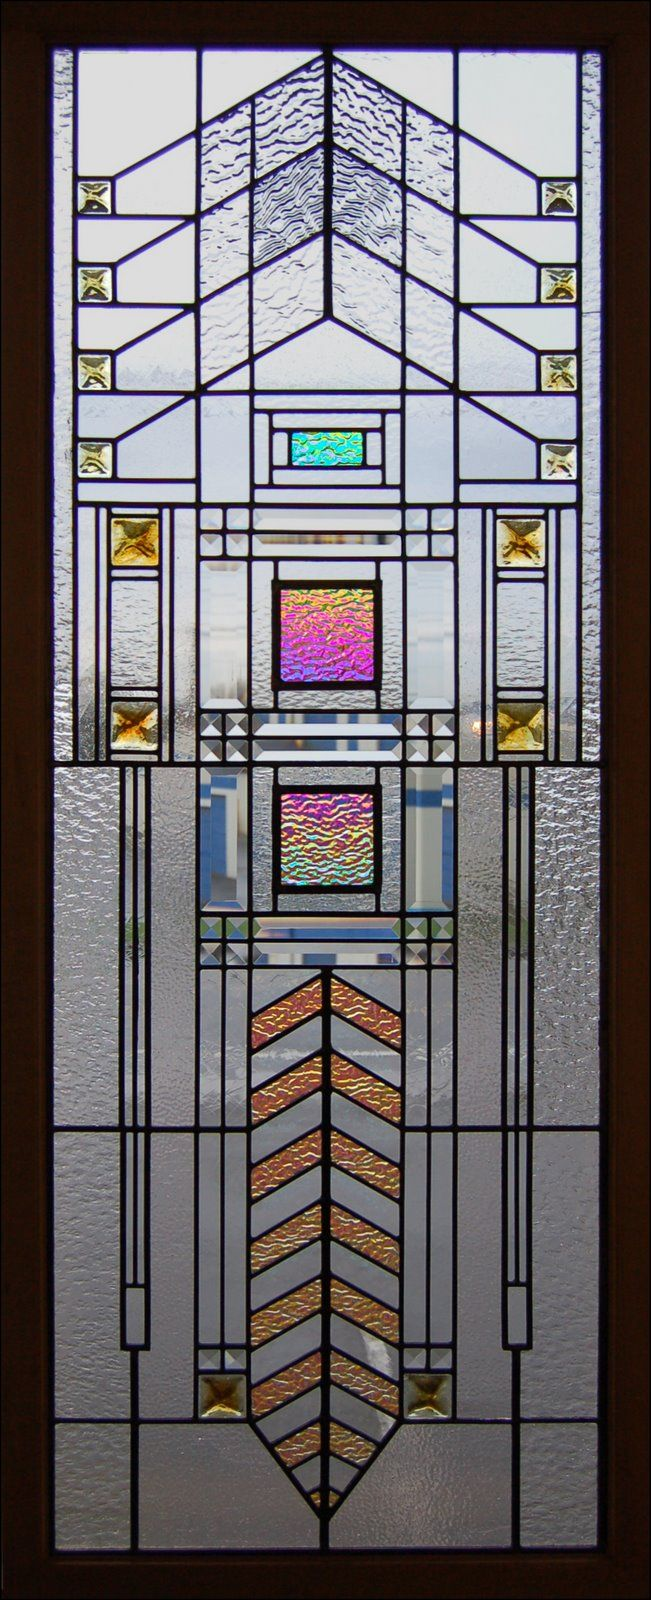 Frank Lloyd Wright Styles frank lloyd wright stained glass - yahoo! search results | frank